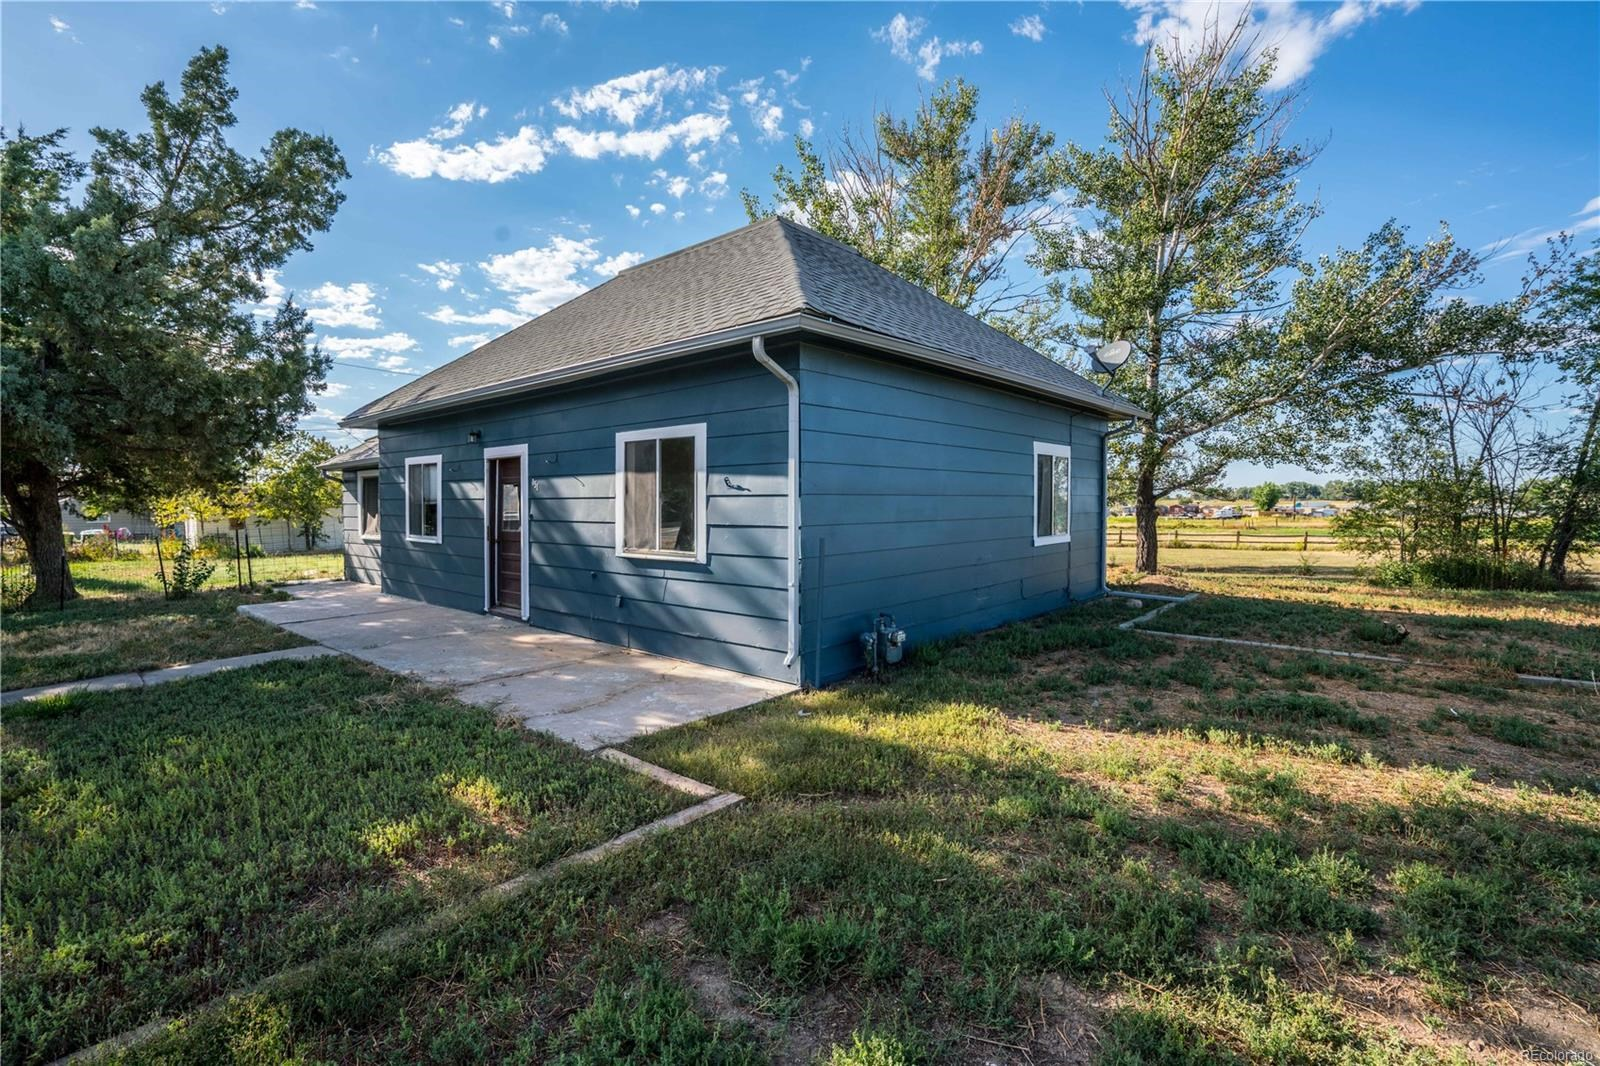 MLS# 8415576 - 12 - 851 Main Street, Hudson, CO 80642